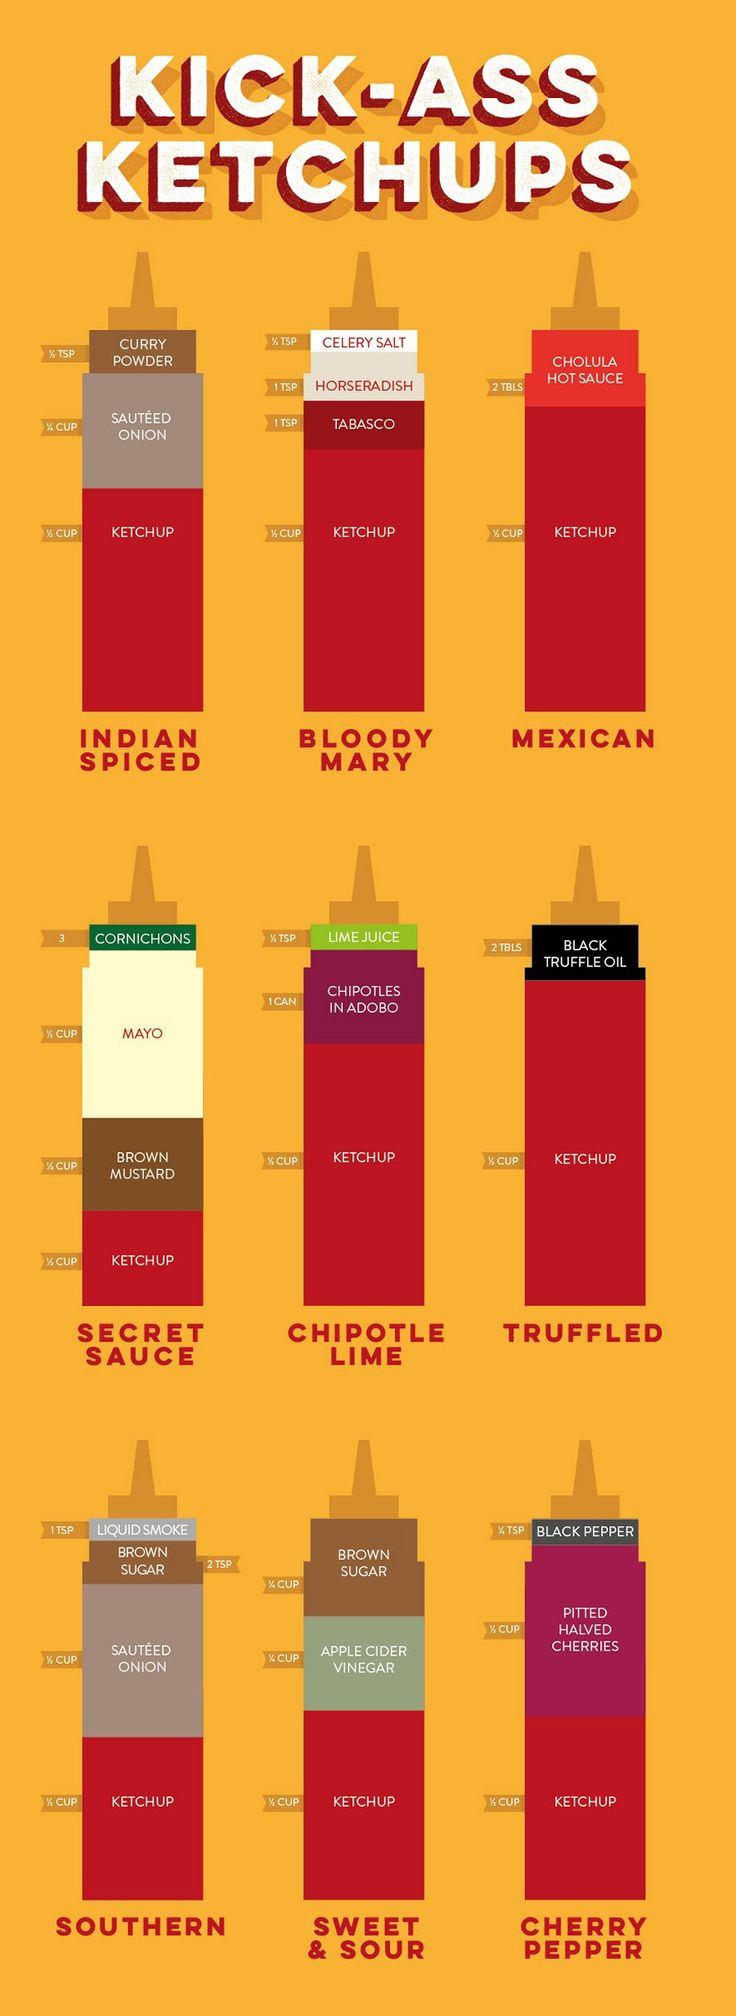 """""""Ketchup + 17 Clean Ingredients = Every Condiment You'll Ever Need"""" by Rachel Meltzer Warren on Rodale's Organic Life; """"Start with an organic ketchup and add spices, herbs, fruit and more for nine gourmet twists on this all-American fixin'."""""""